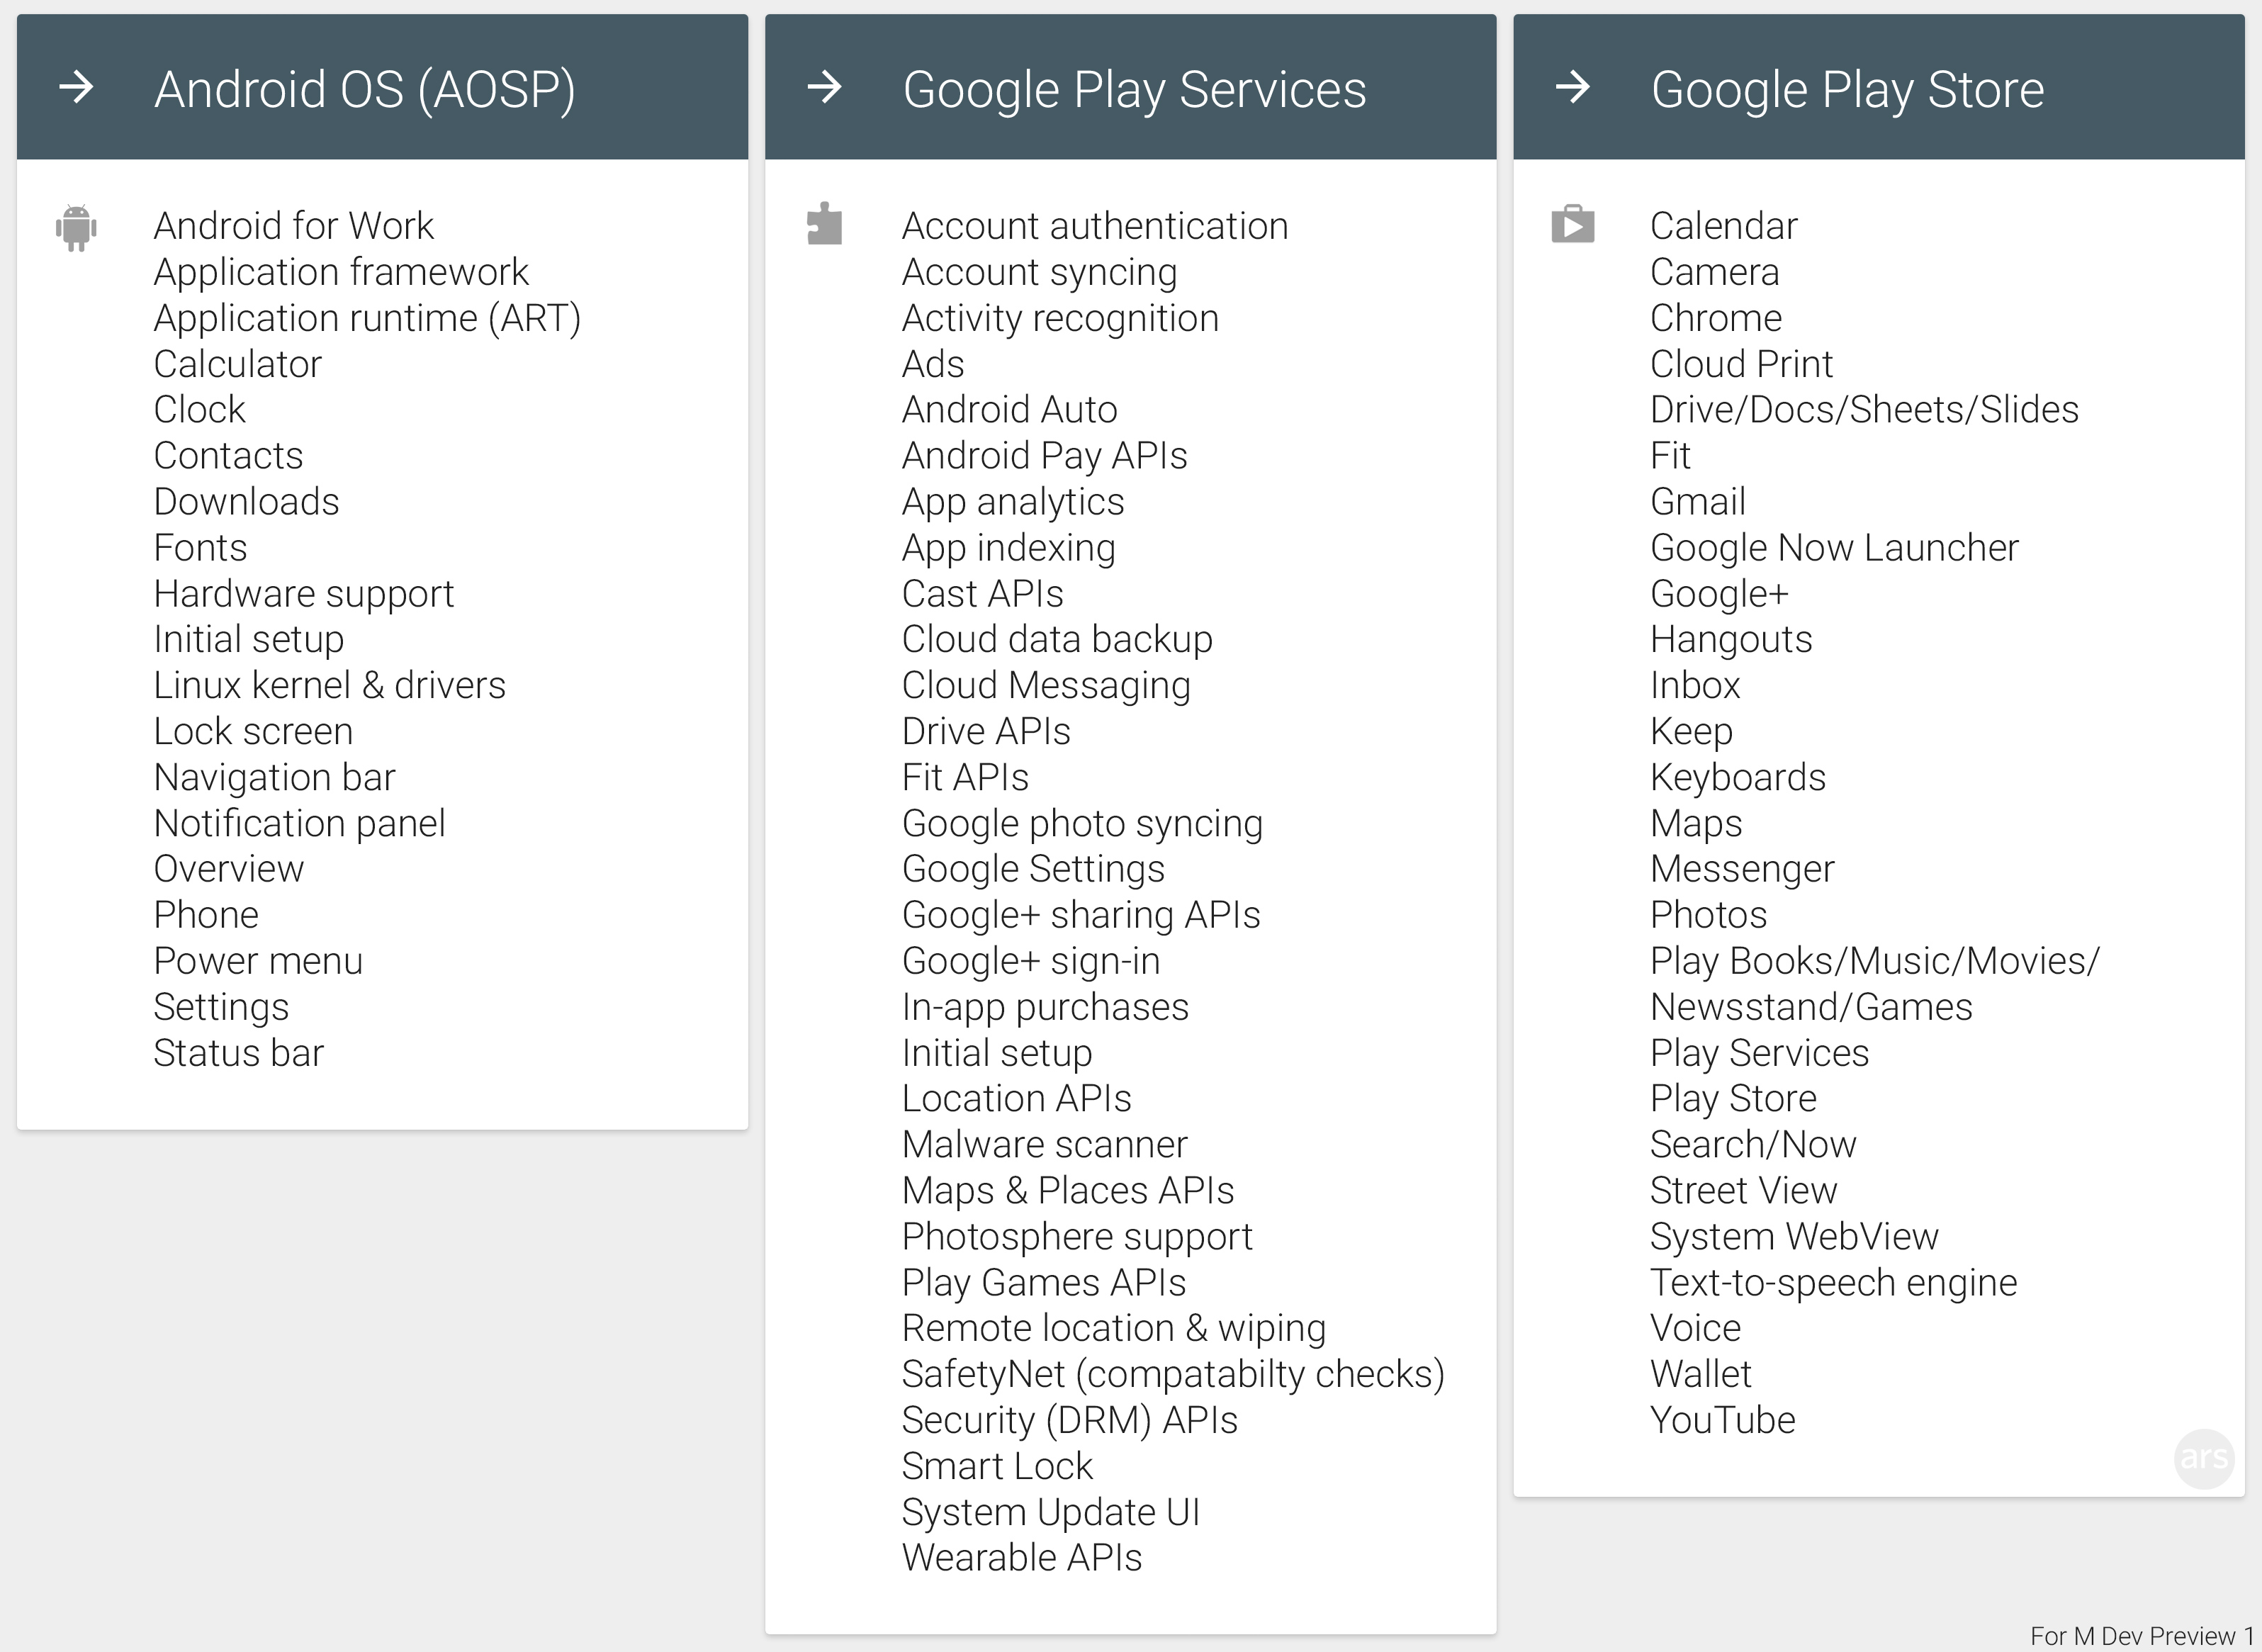 http://cdn.arstechnica.net/wp-content/uploads/2015/06/Play-Services-What-goes-where-M-Dev-11.jpg